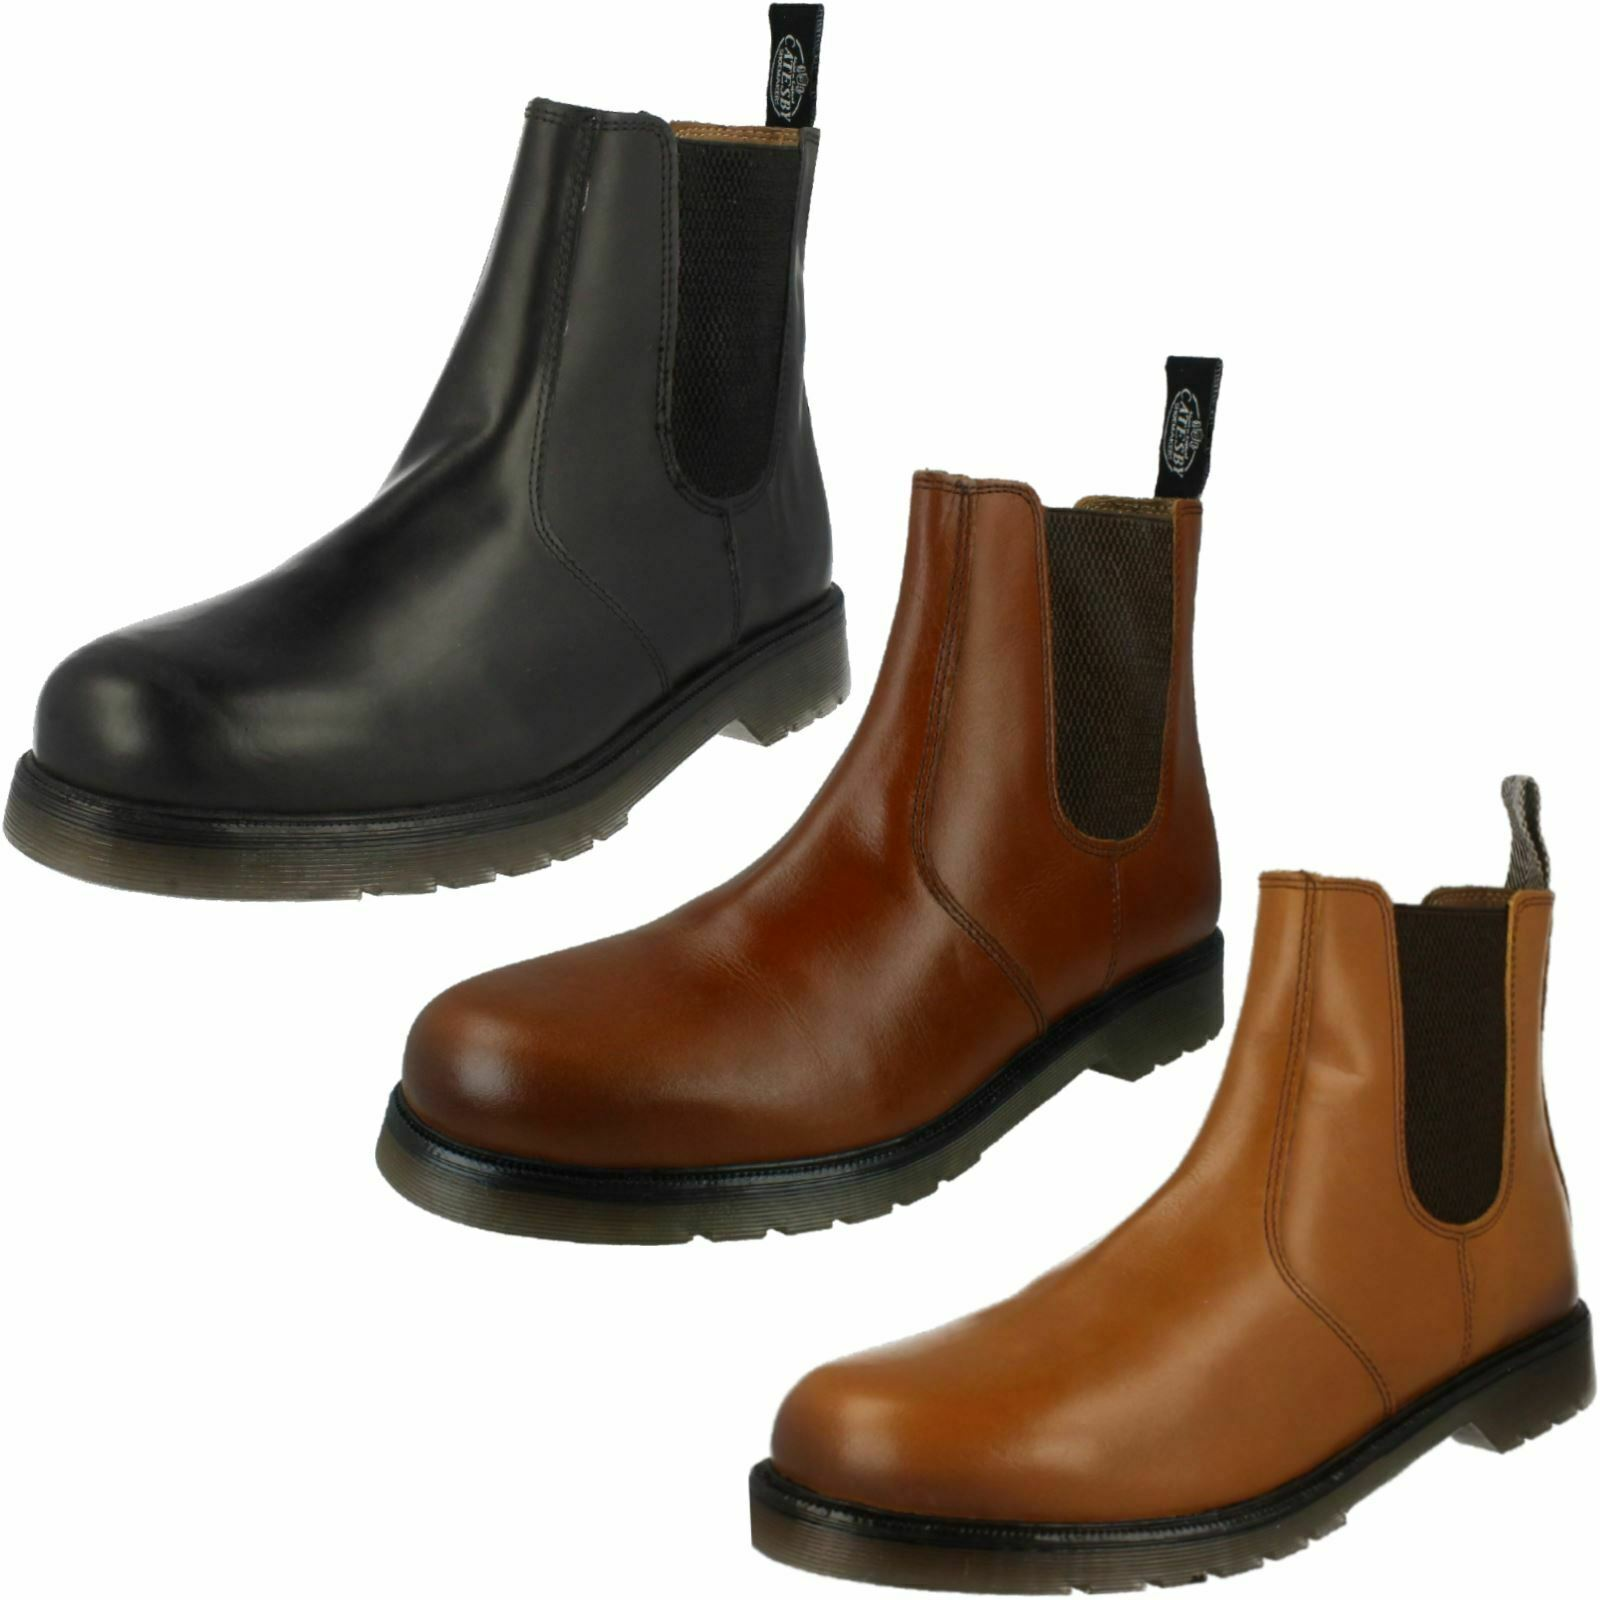 Catesby Mens Smart Pull On Dealer Boots - 01700